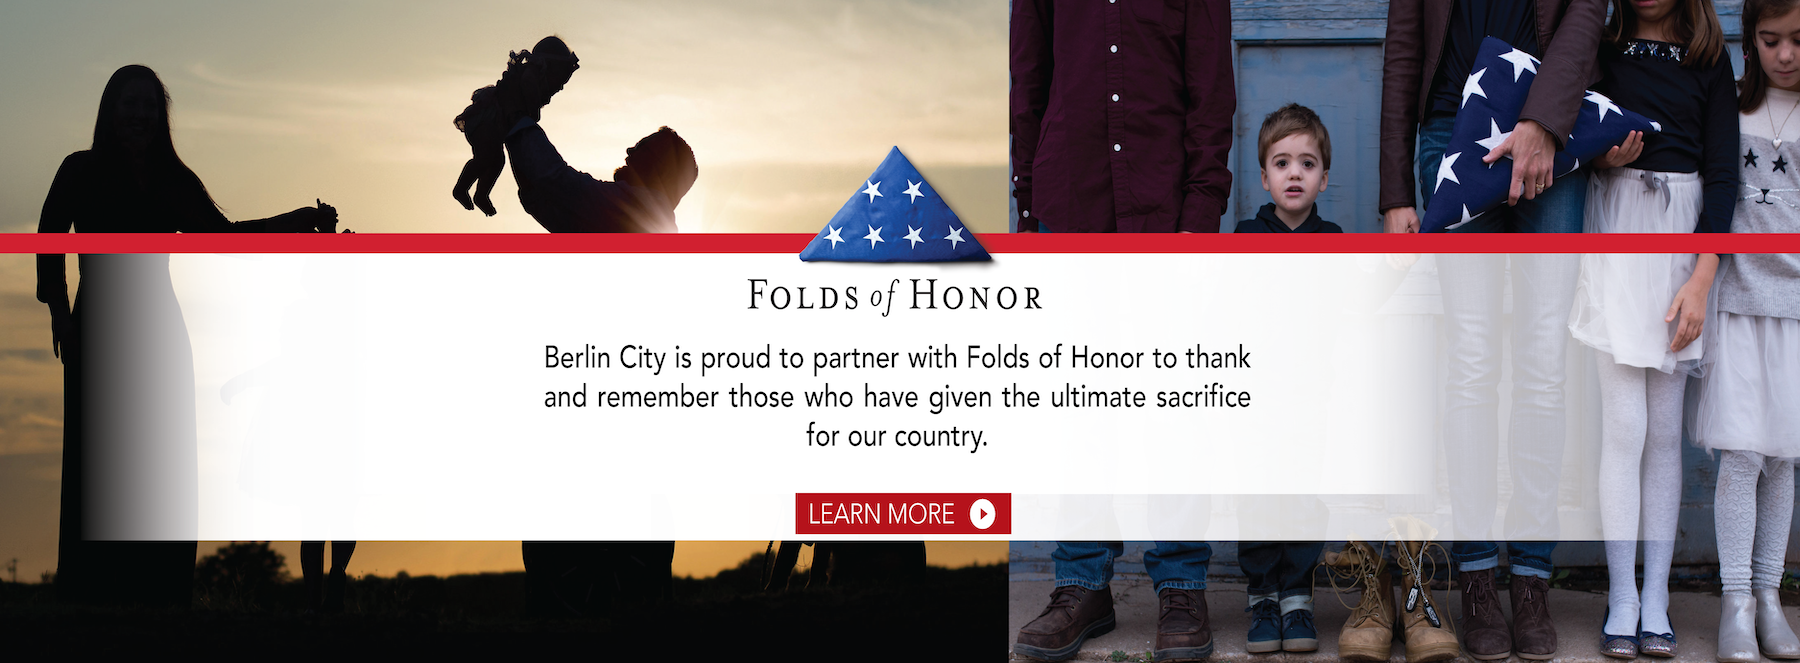 2021_MAY_FoldsOfHonor_BCAG_DealerInspire_1800x550[10]